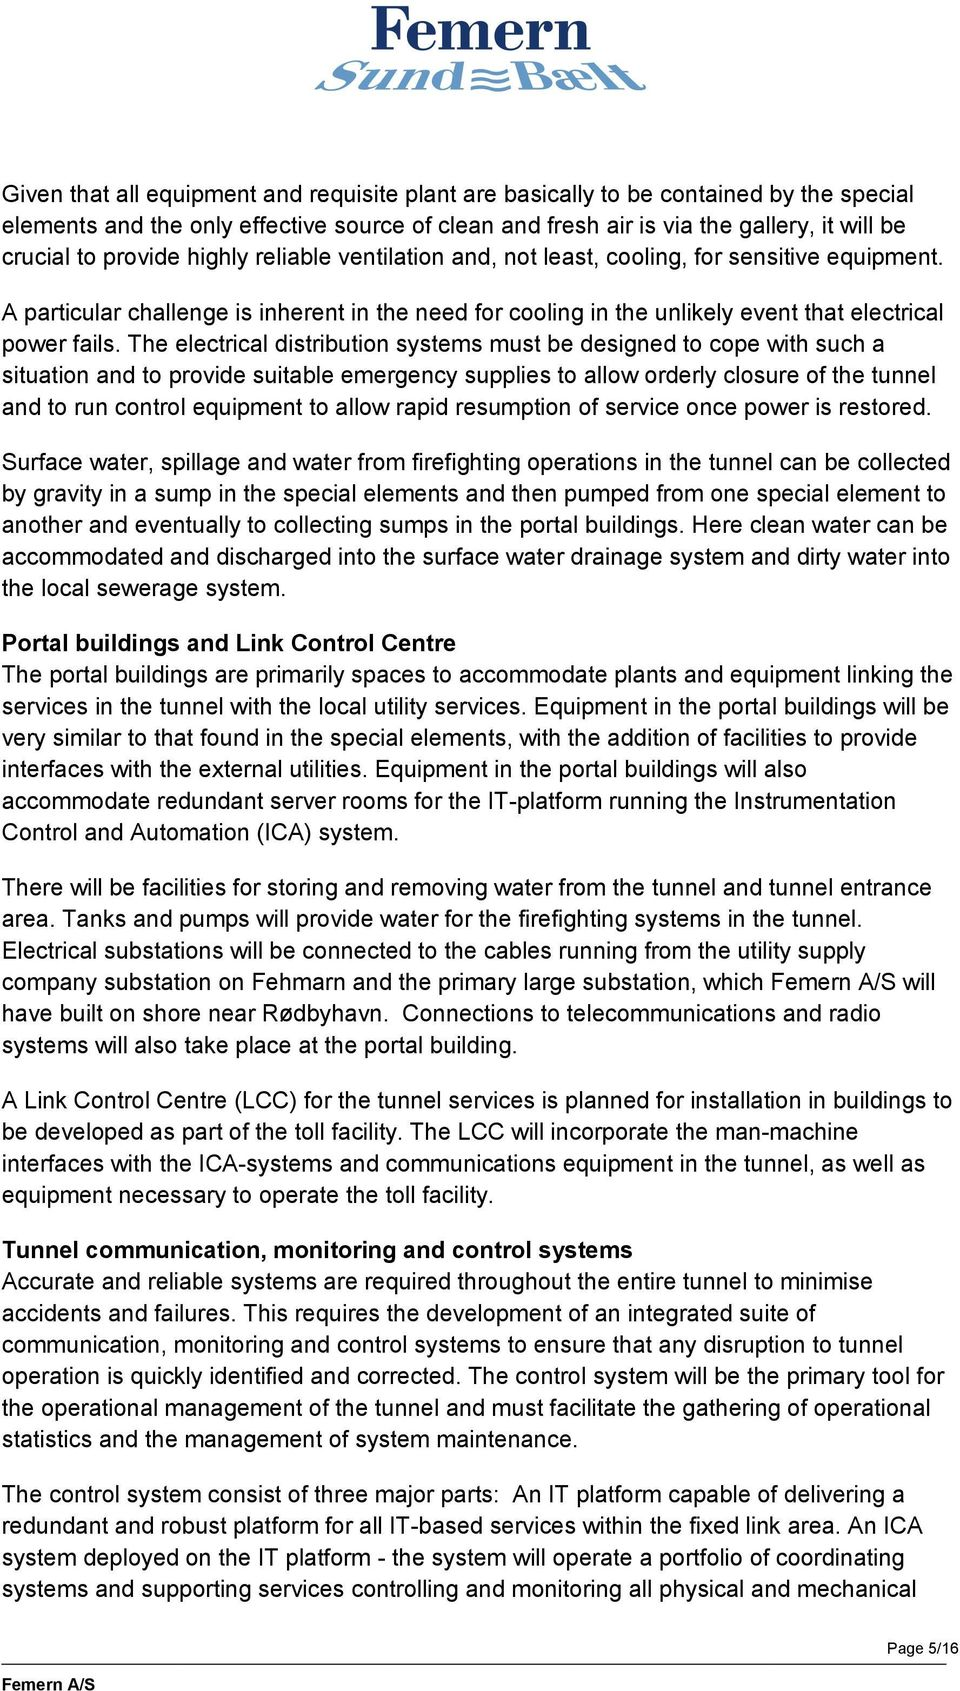 The electrical distribution systems must be designed to cope with such a situation and to provide suitable emergency supplies to allow orderly closure of the tunnel and to run control equipment to